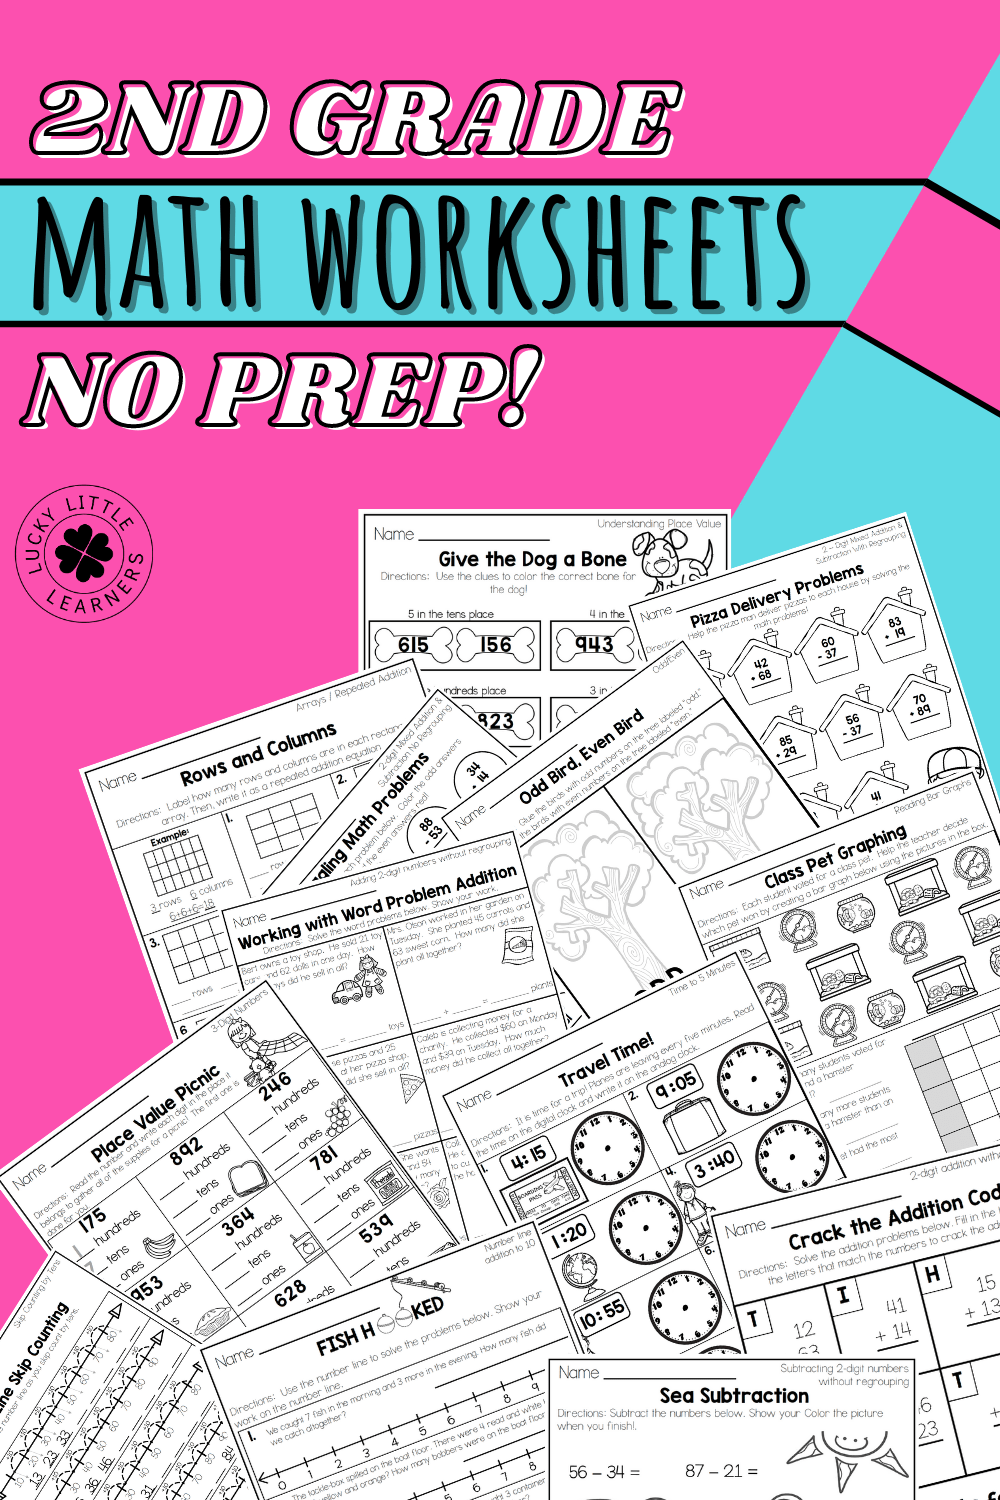 hight resolution of 2nd Grade Math Worksheets - No Prep! - Lucky Little Learners